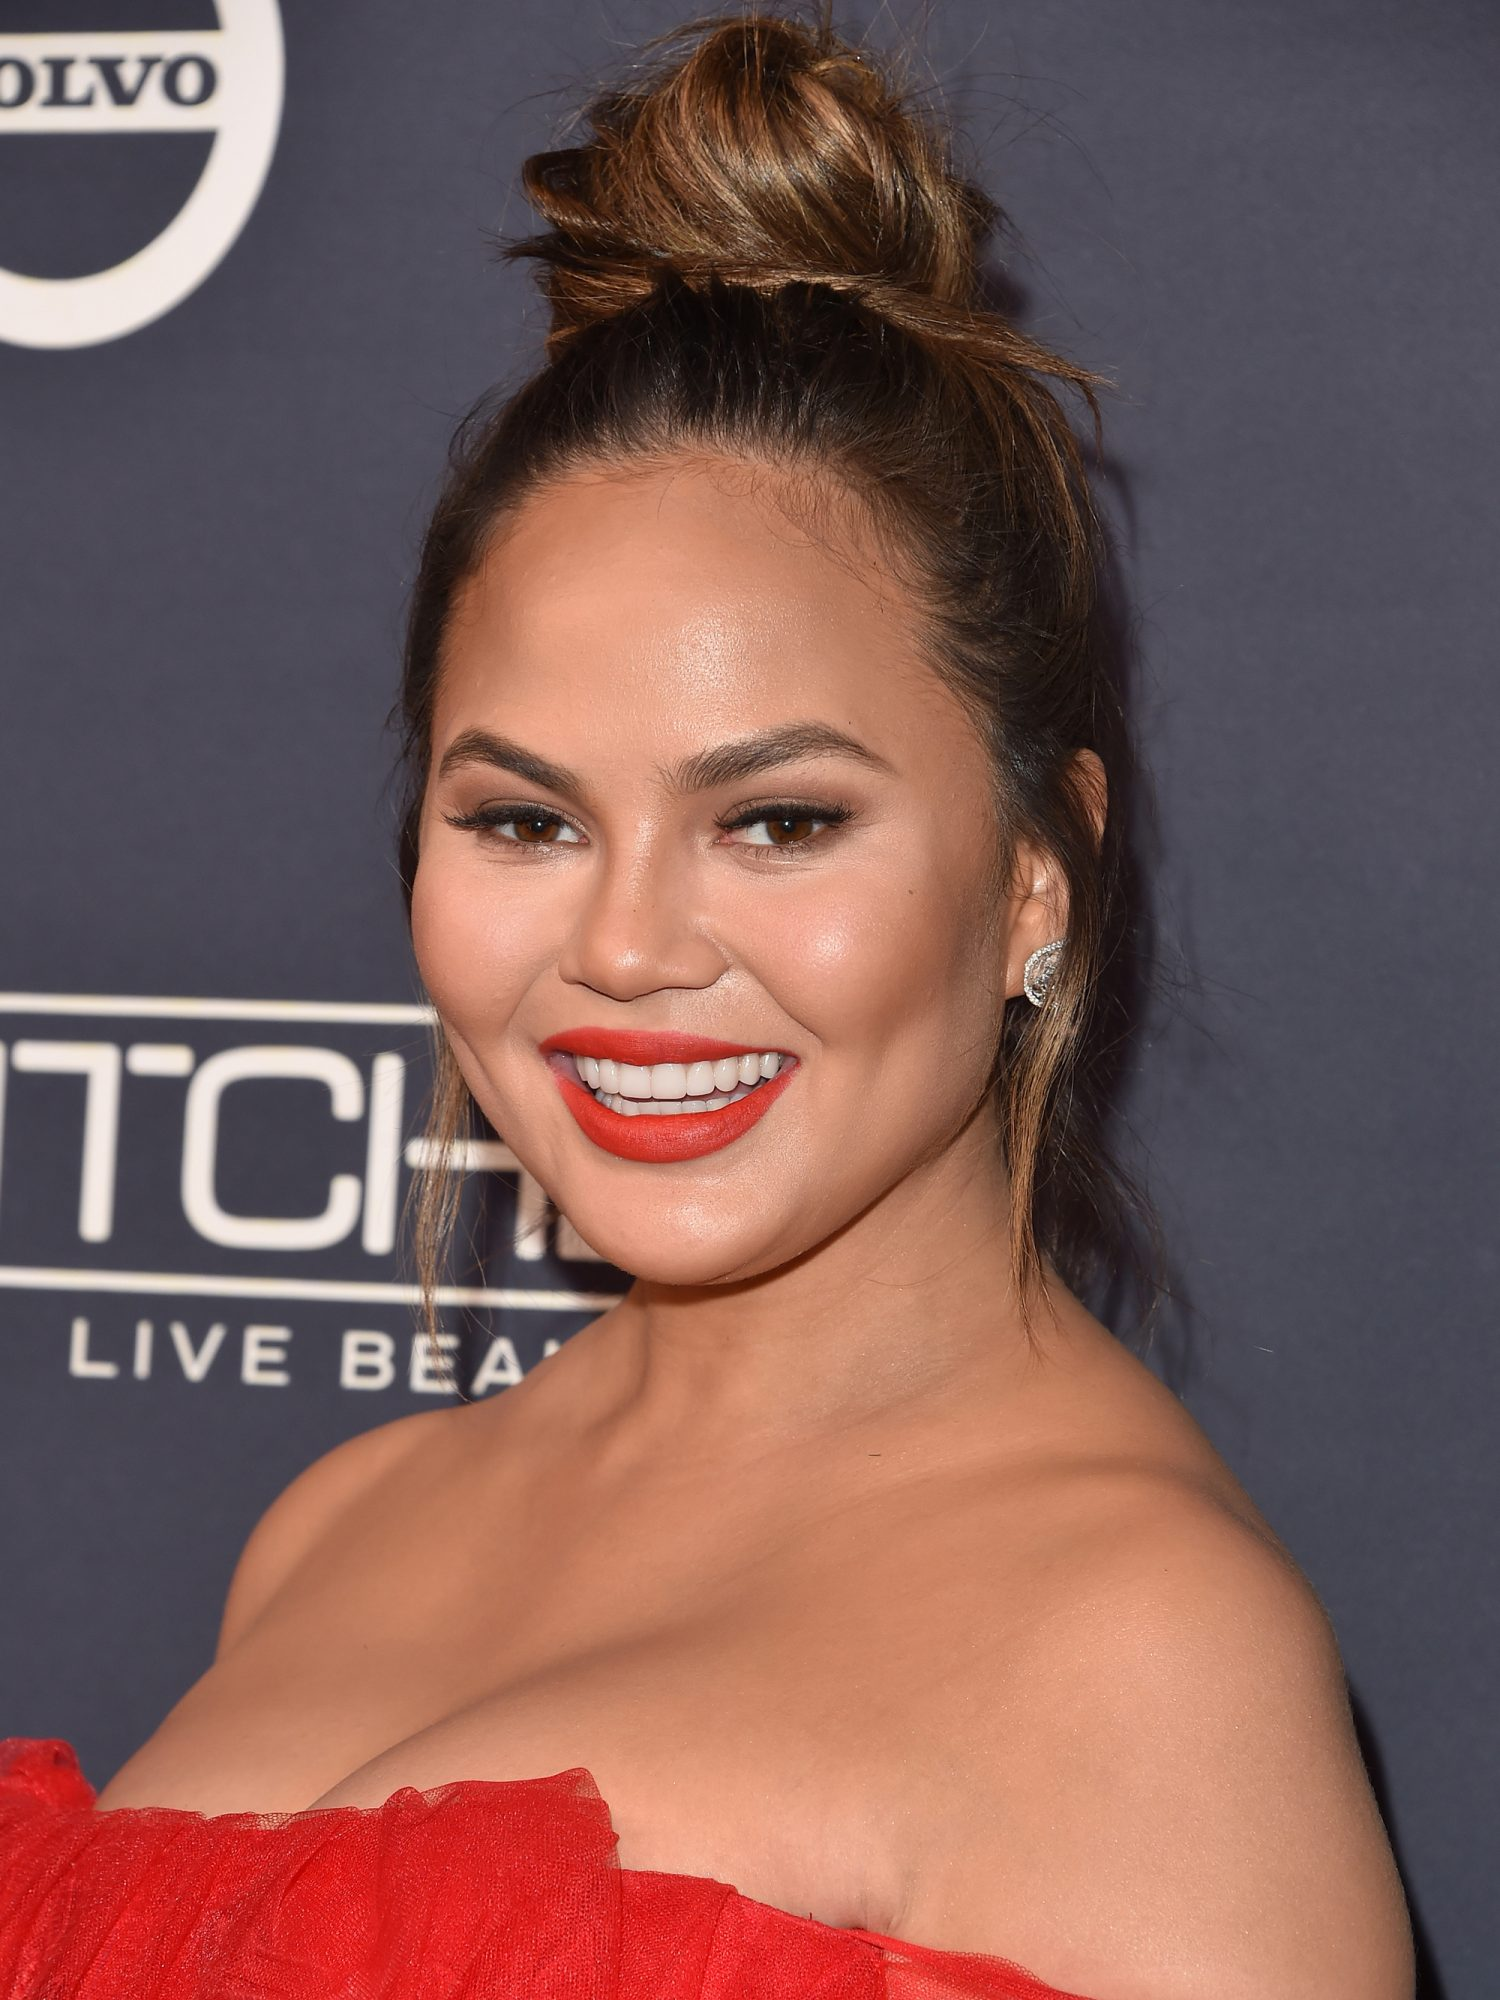 Chrissy Teigen and Her Family Pose in Matching Christmas Pajamas in January